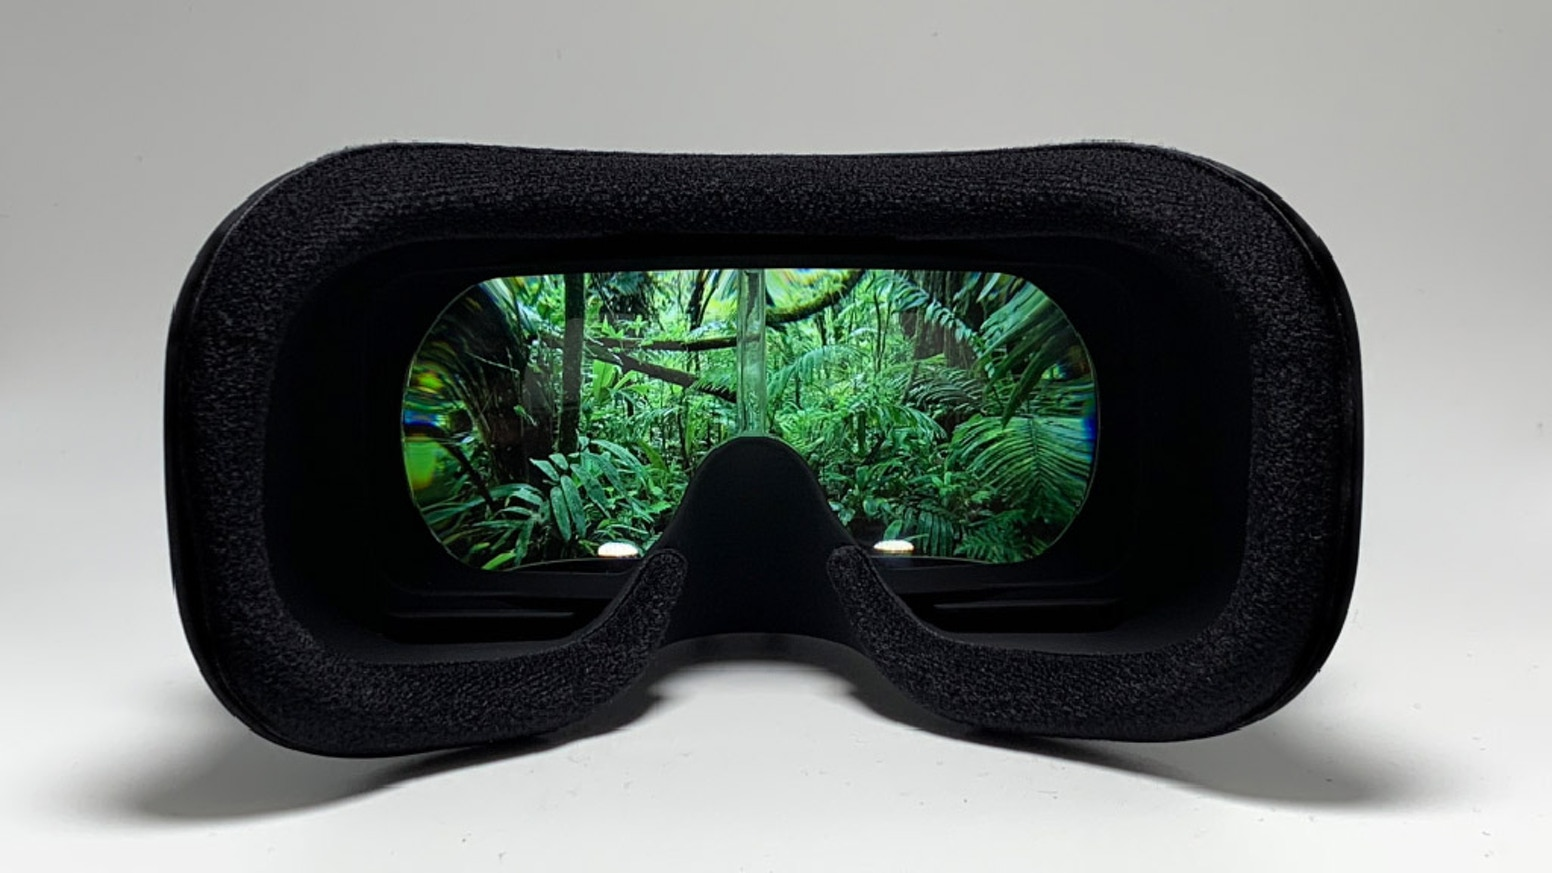 Introducing our revolutionary MagiMask with unique optics and  tracking kit - easy-to-use AR package for all smartphones.